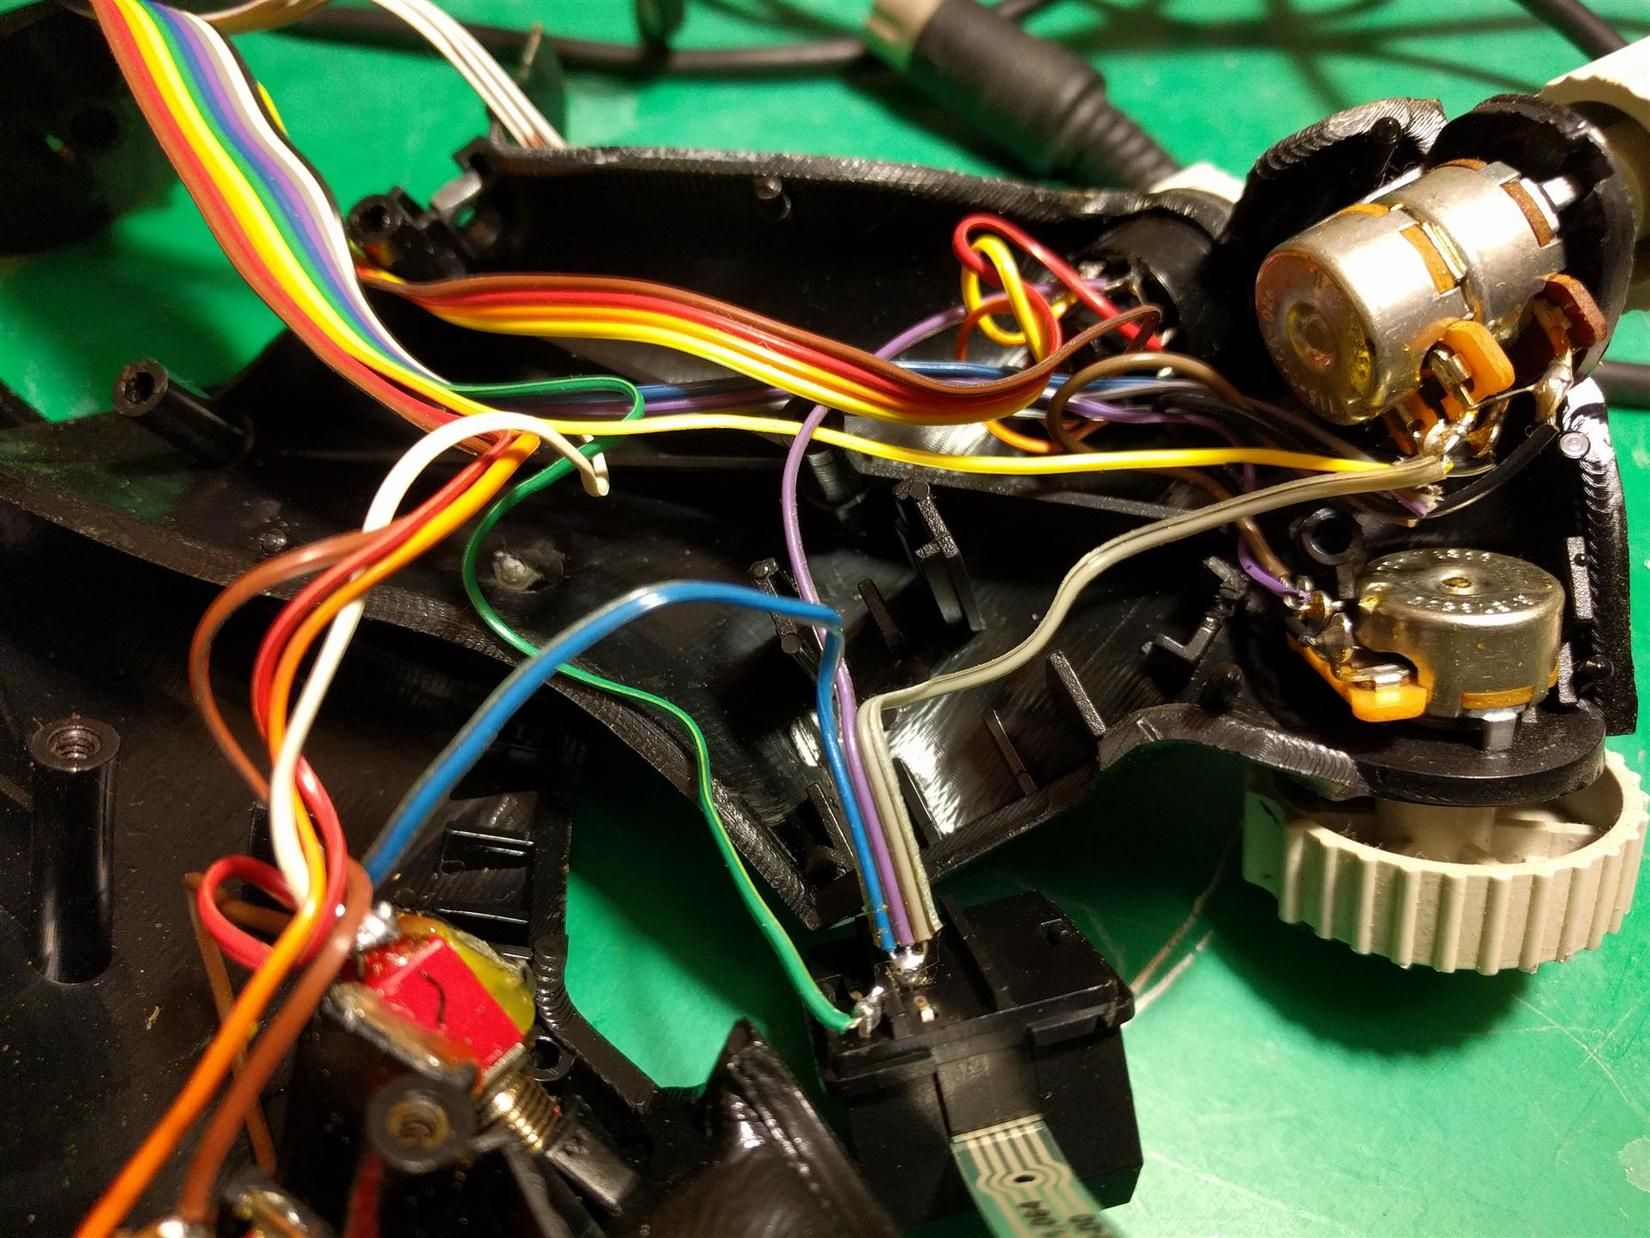 F16 Flcs Tqs Original Usb Conversion Simhq Forums Mamba Max Pro Wiring Diagram Of Wires Have Fallen Off Switches Etc While On The Bench And Having Pics Has Saved Me From To Do Alot Googling Figure Out What